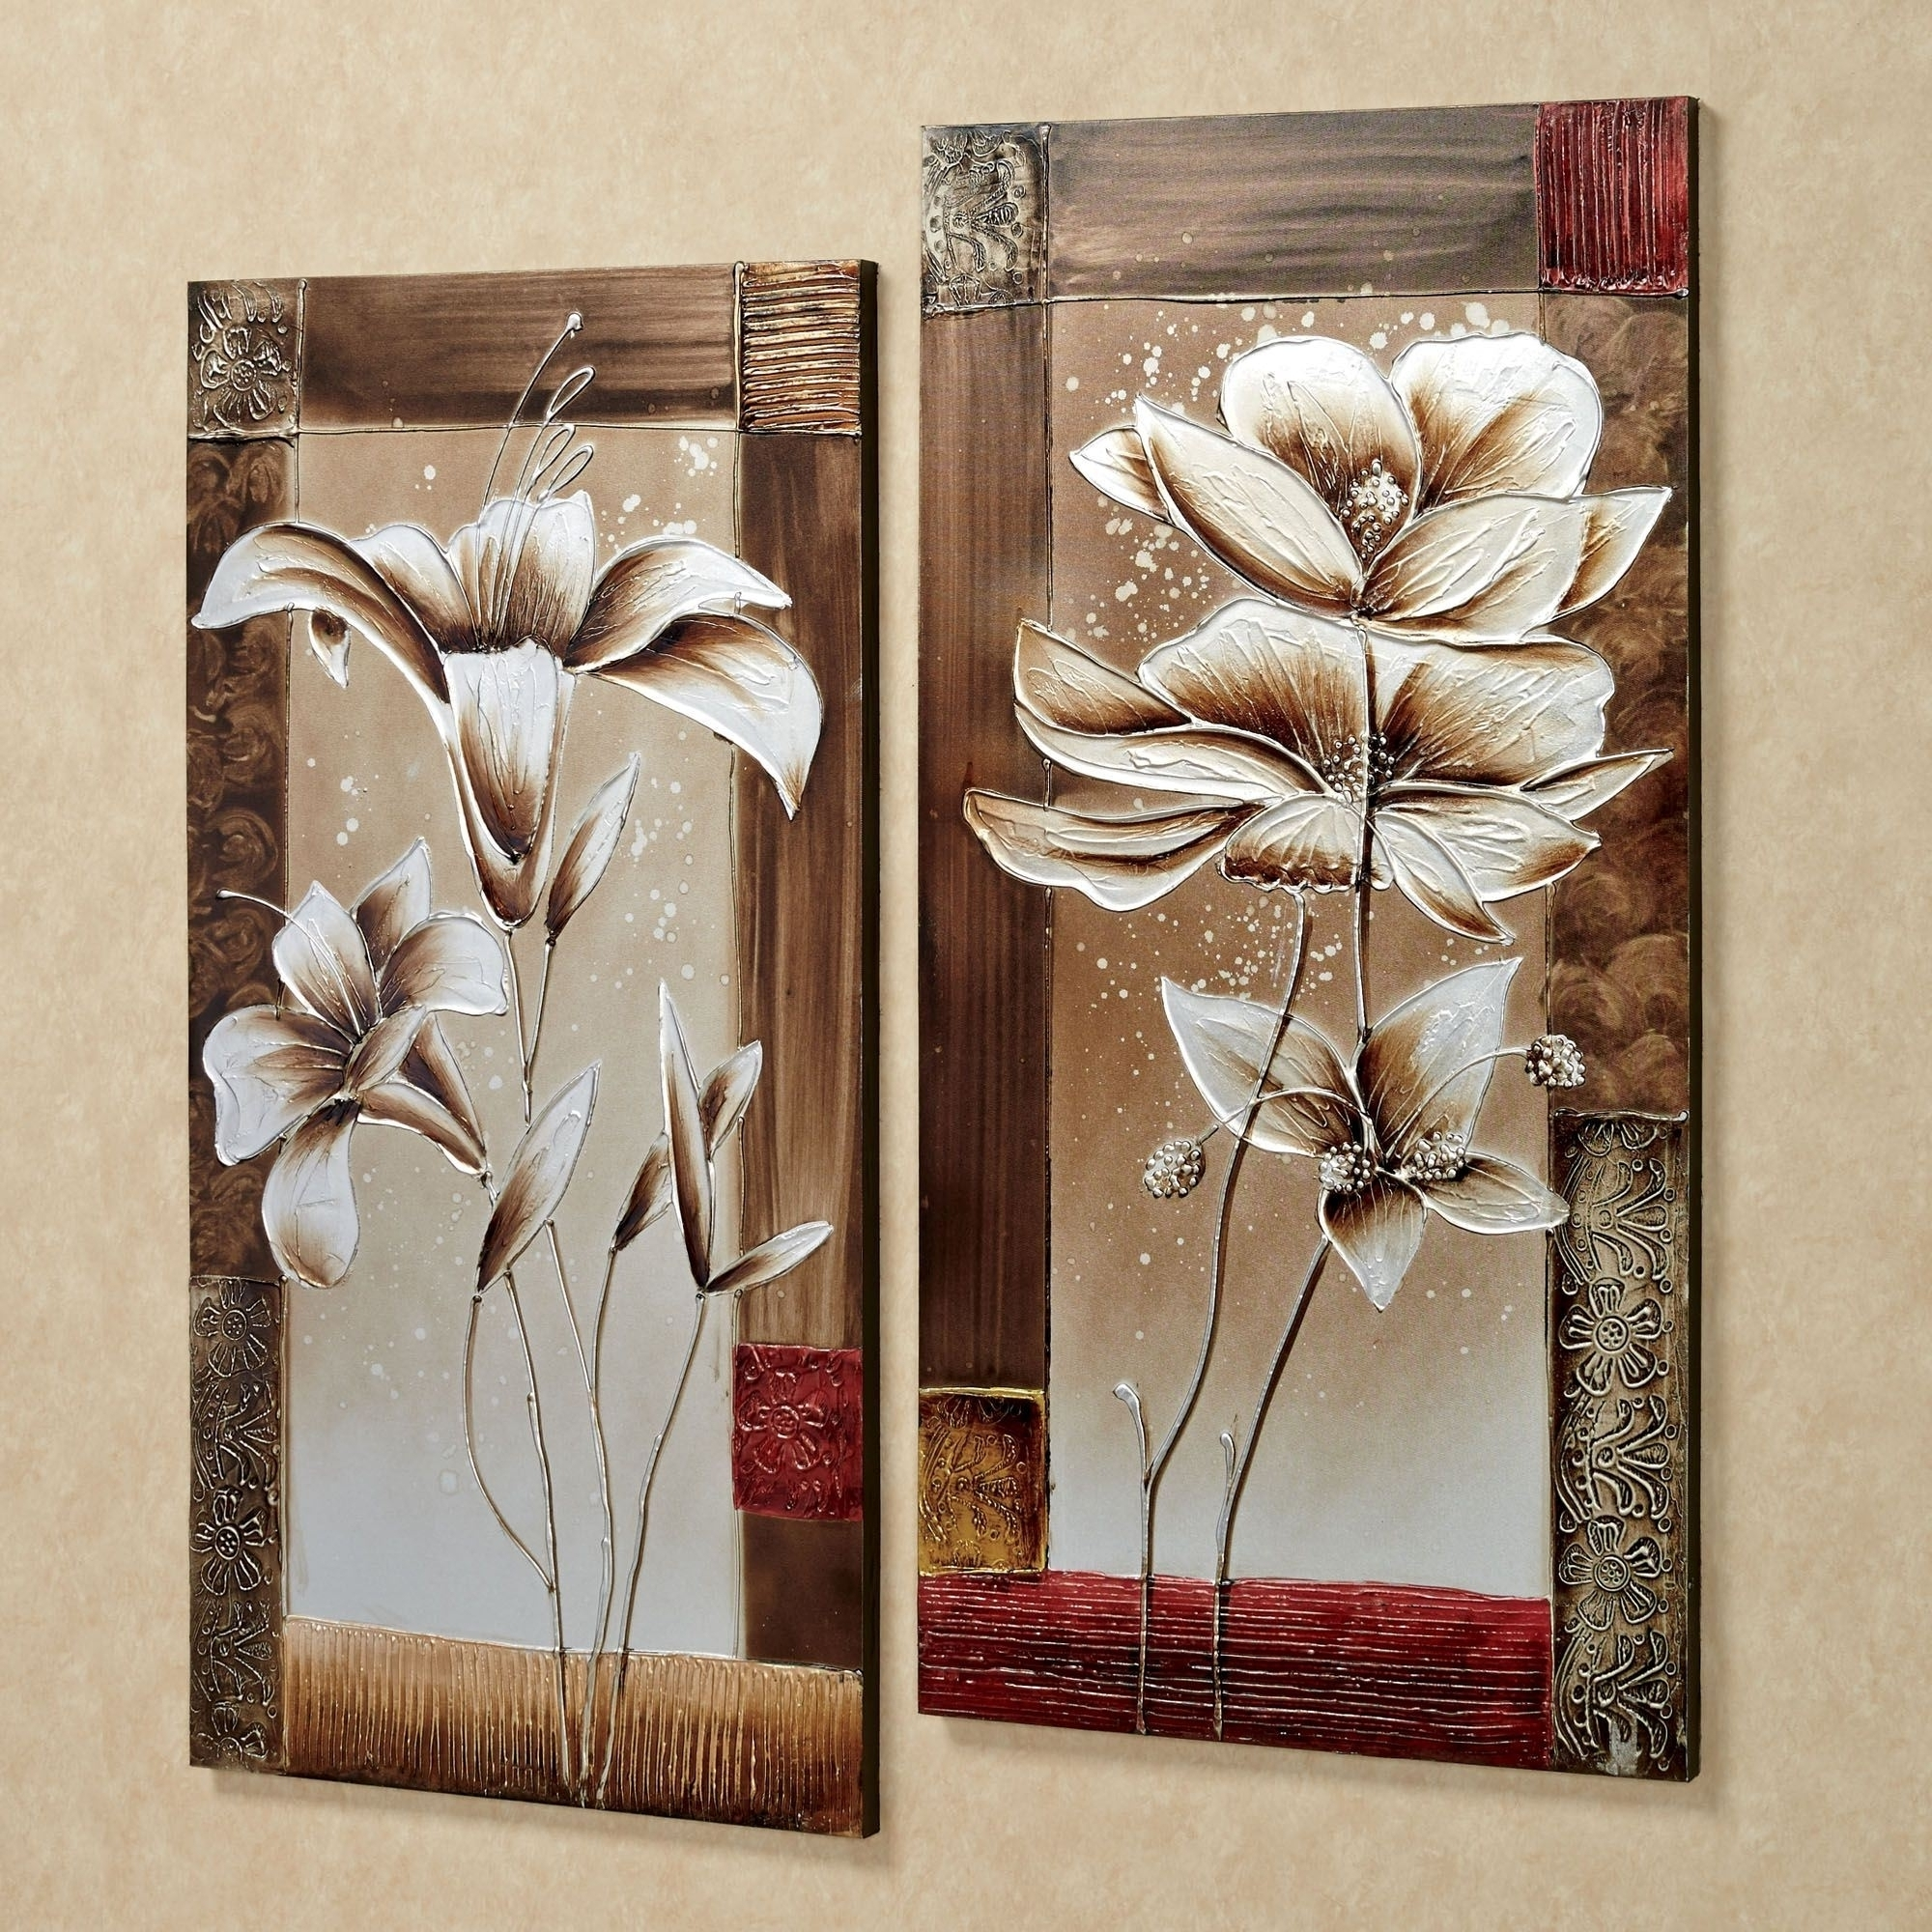 Extraordinary Framed Wall Art Sets 17 Stunning Canvas 2 Piece 3 Pertaining To Current Set Of 2 Framed Wall Art (View 2 of 15)